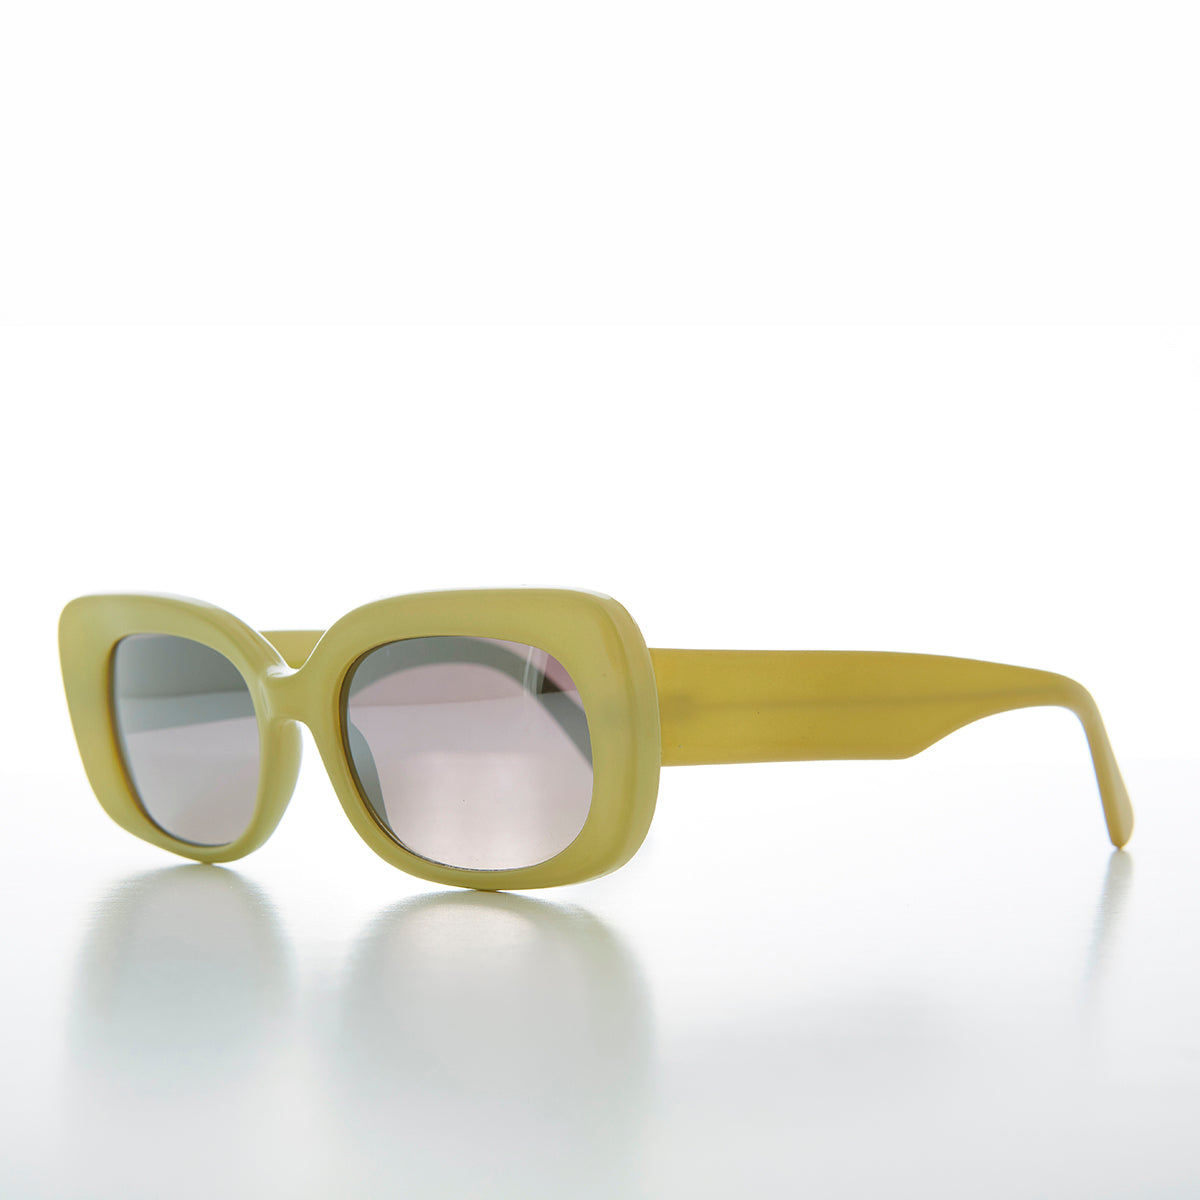 Thick Pastel Oval Mod Retro Sunglass